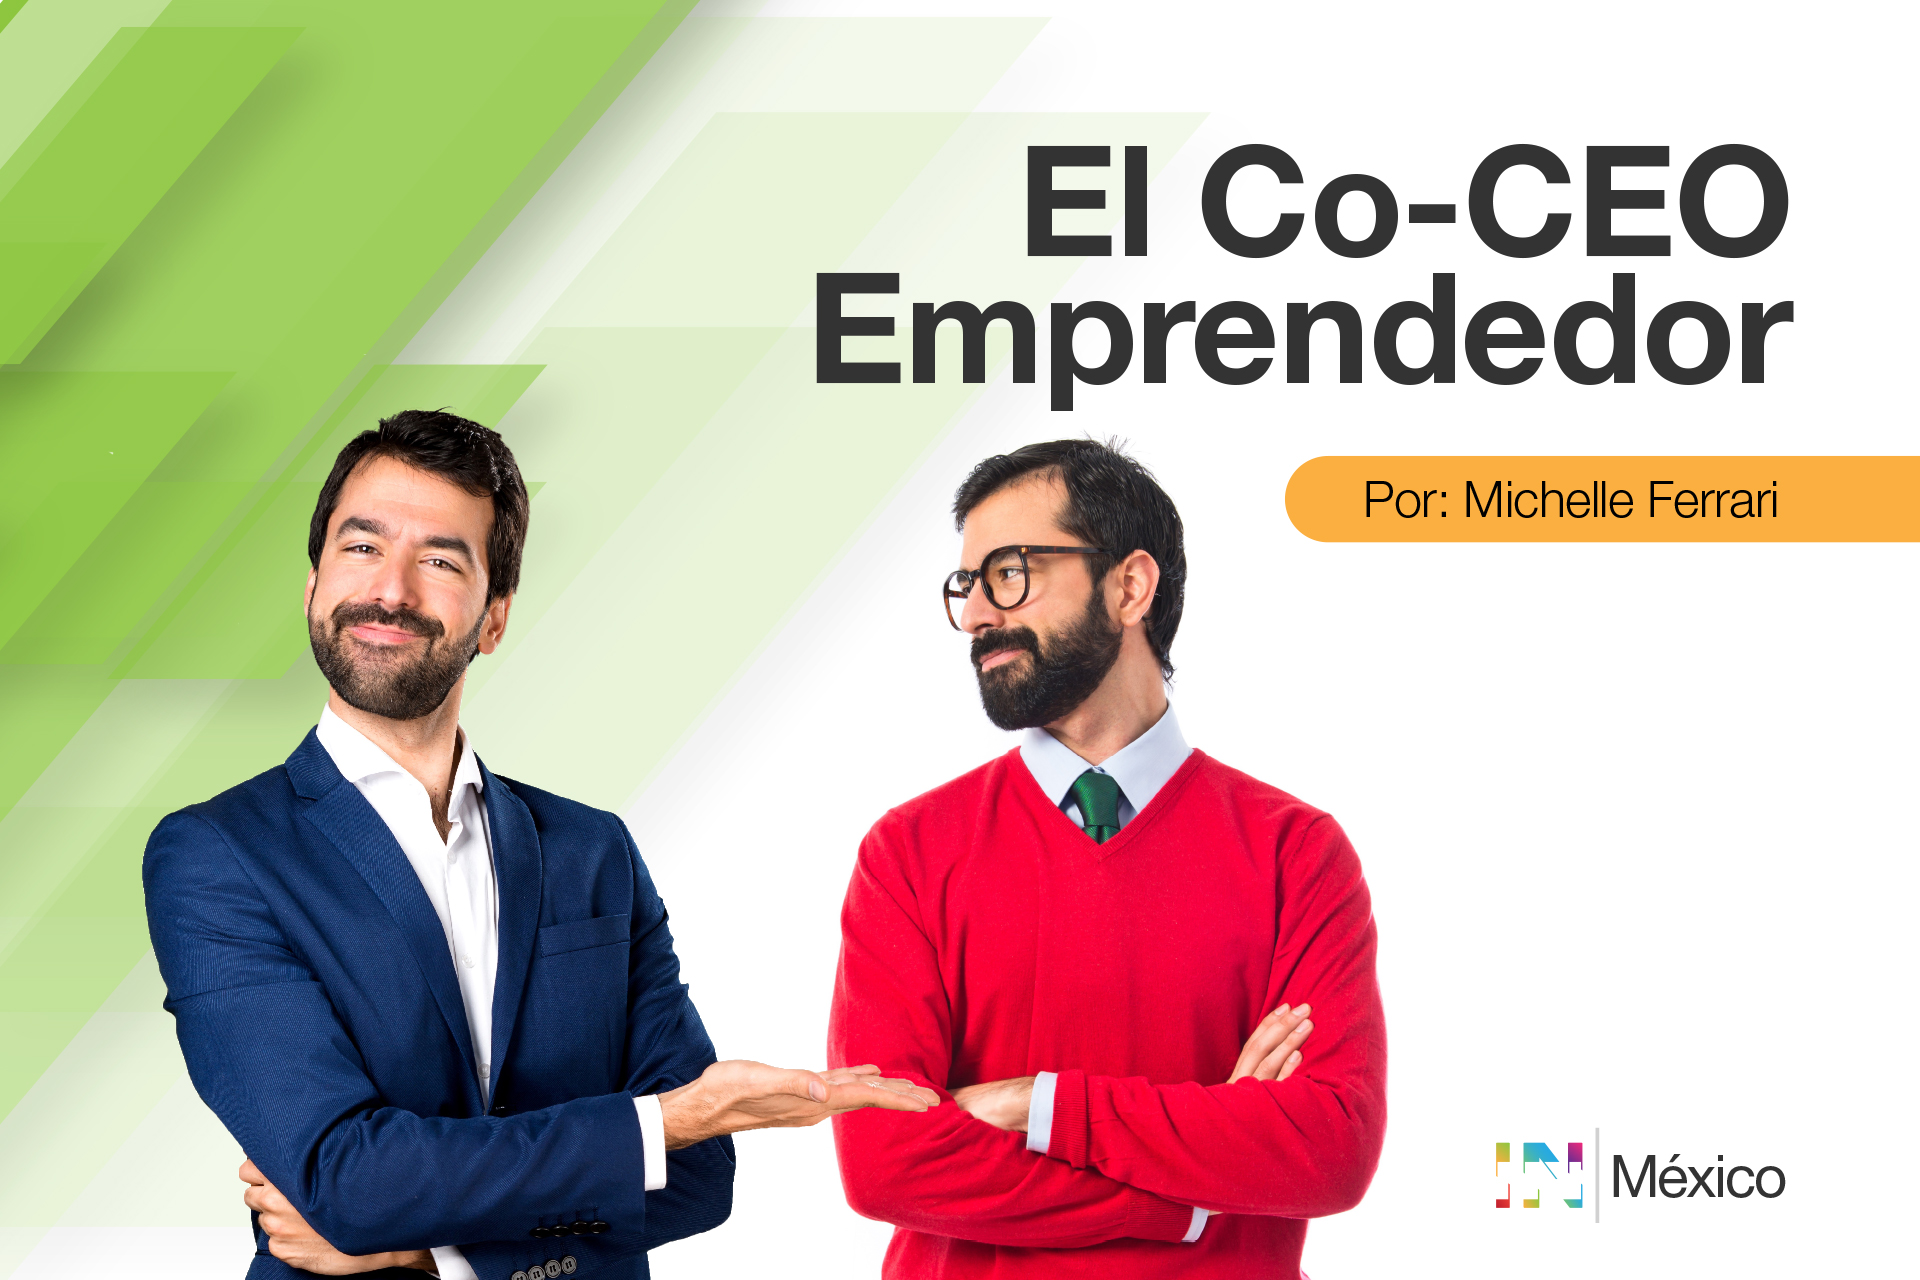 El Co-Ceo Emprendedor